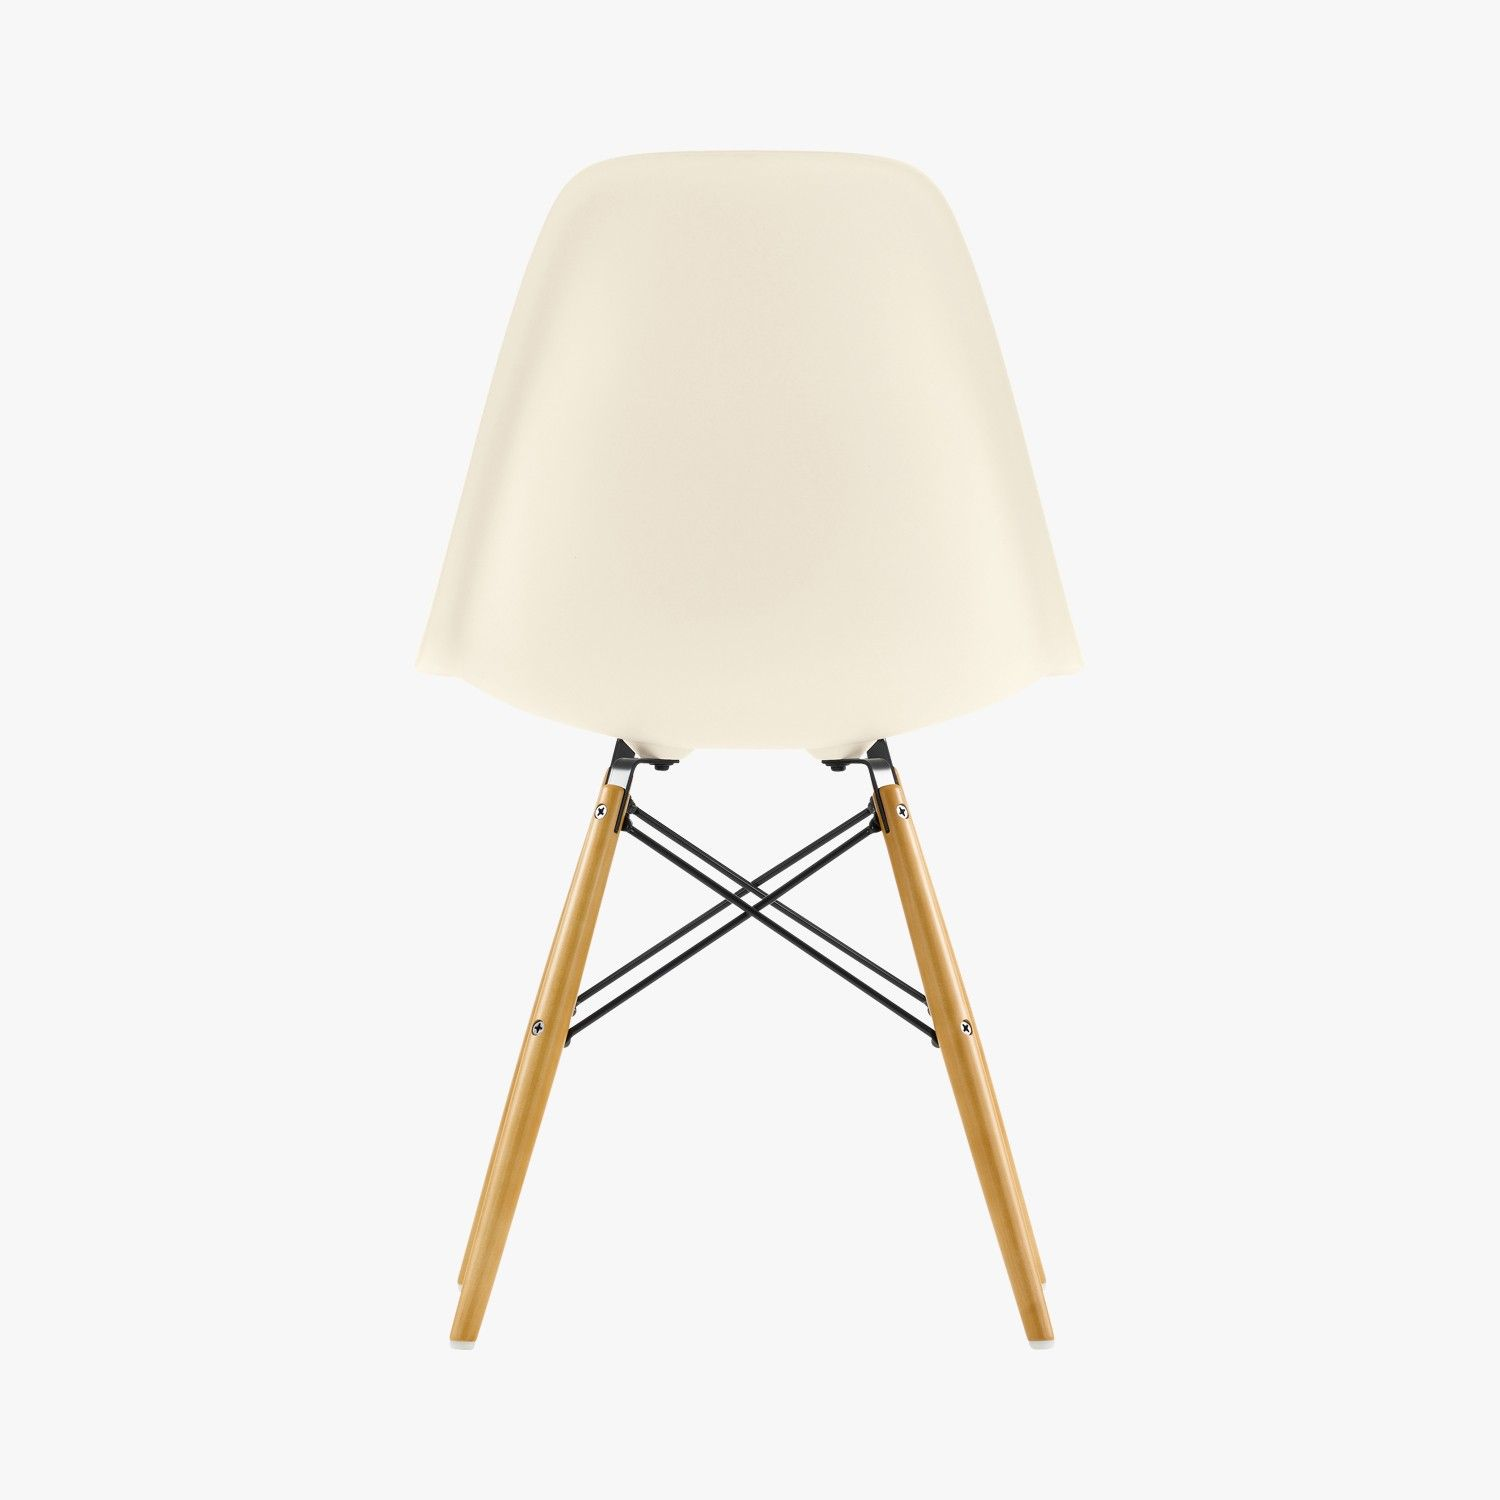 Chaise DSW Plastic Chair Blanche, Charles & Ray Eames, 1950 - VITRA ...